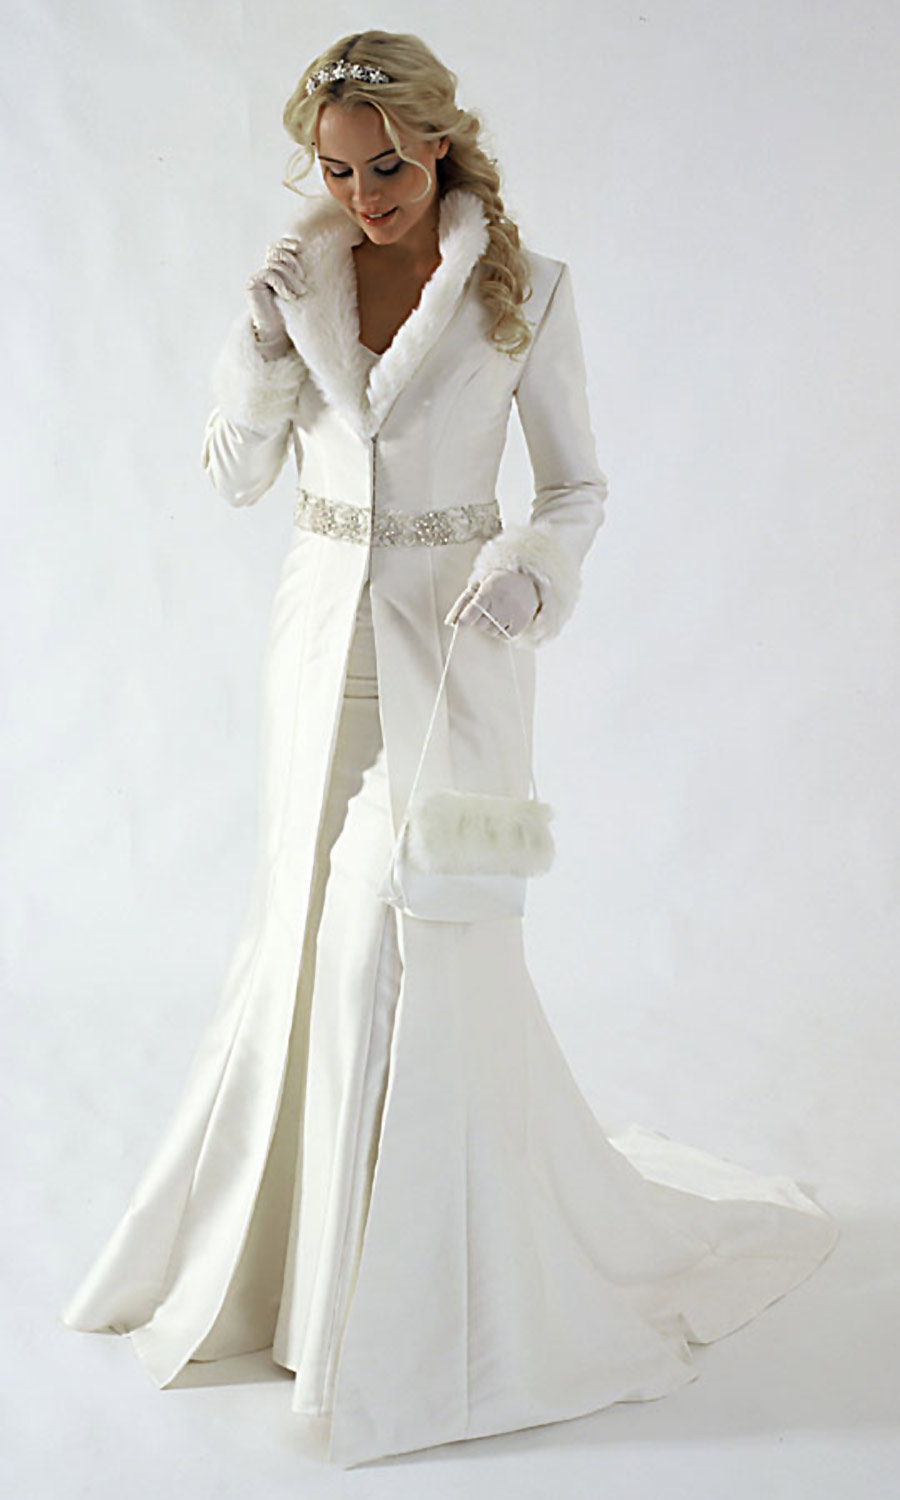 winter wedding dress trends for 2010 wedding With dress for winter wedding